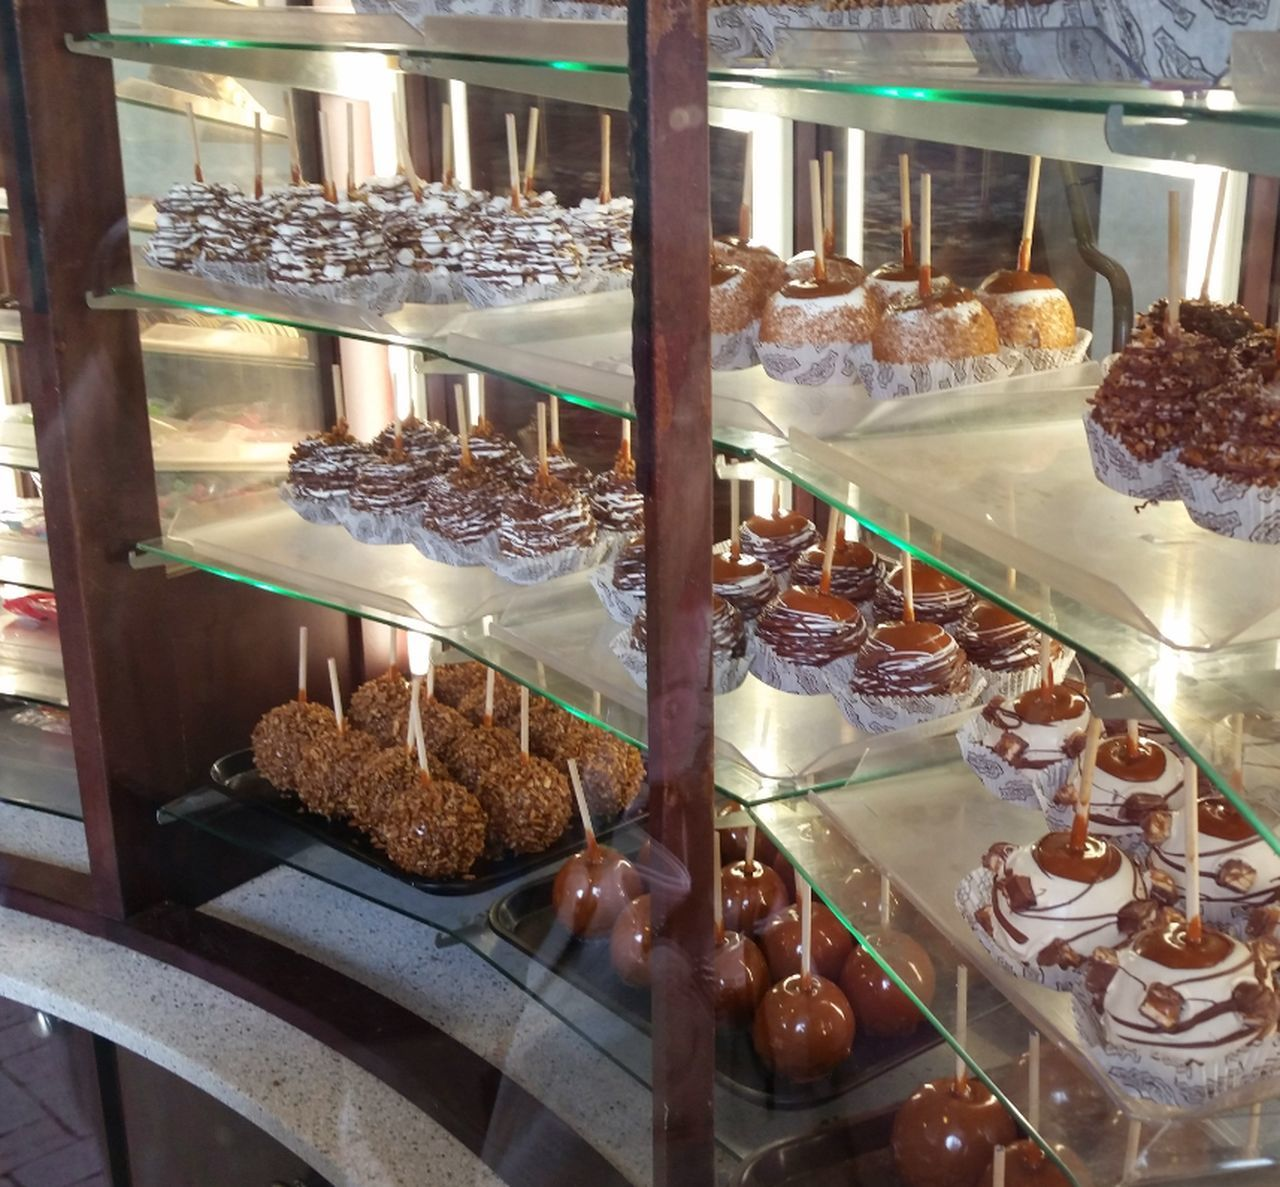 Beautifully Organized Sweet Food Indulgence Indoors  Dessert Display Cabinet Food Candy Apple Caramel Apples Popular Photos EyeEm Best Shots